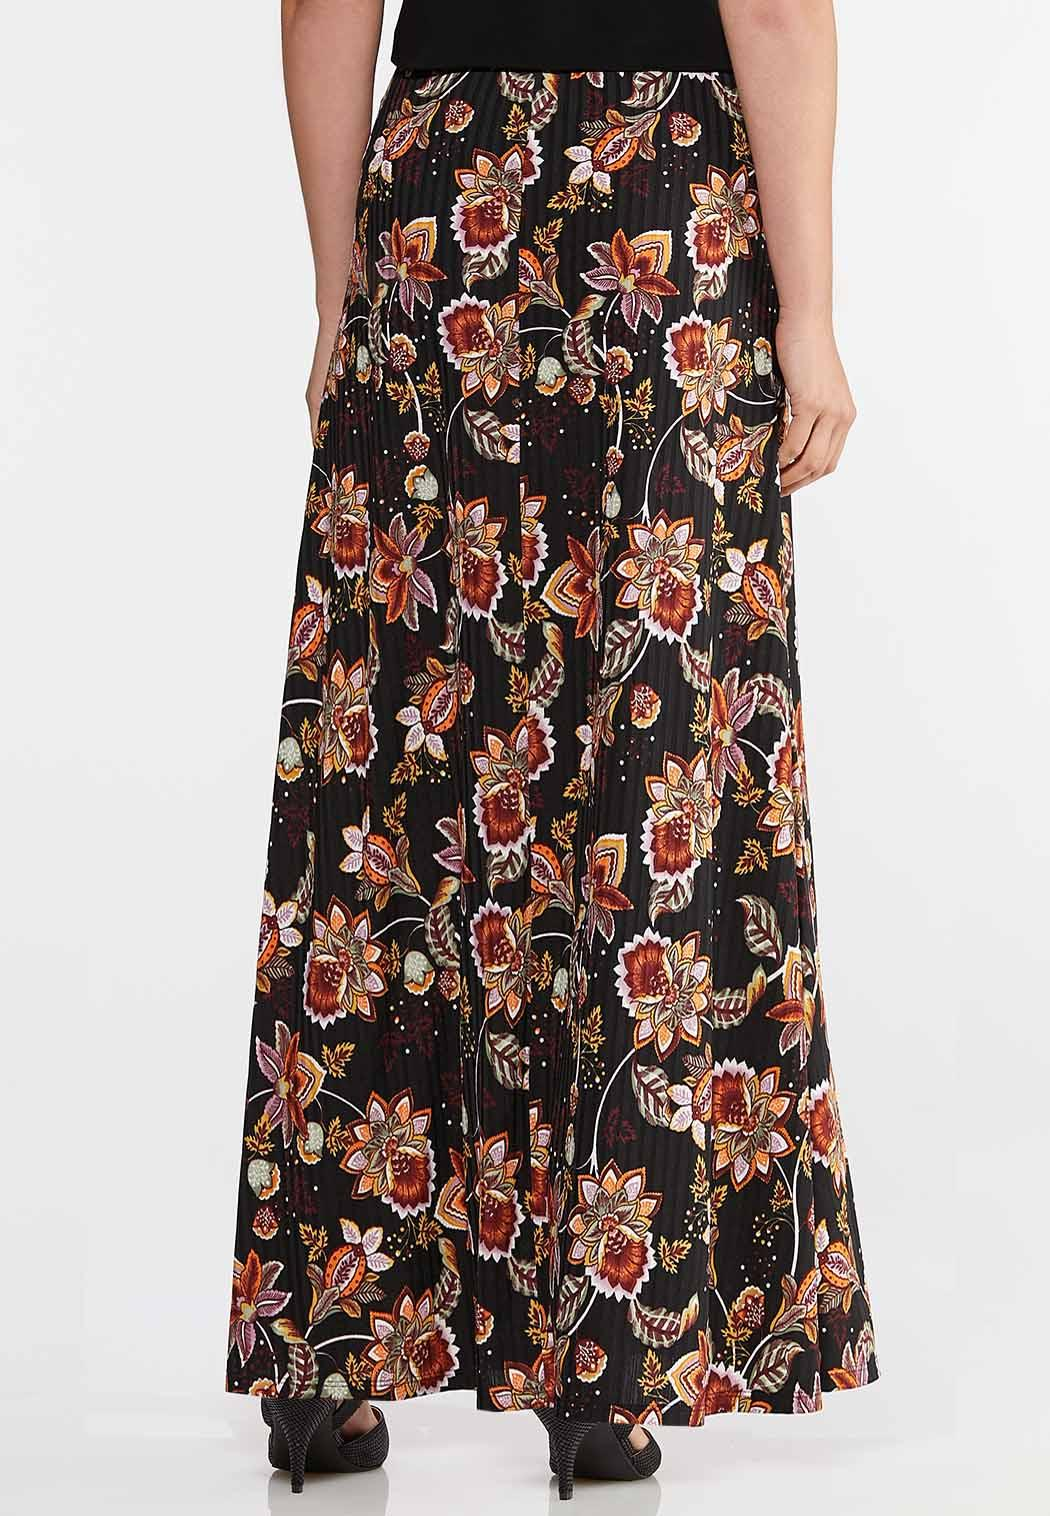 Ribbed Floral Skirt (Item #43940531)